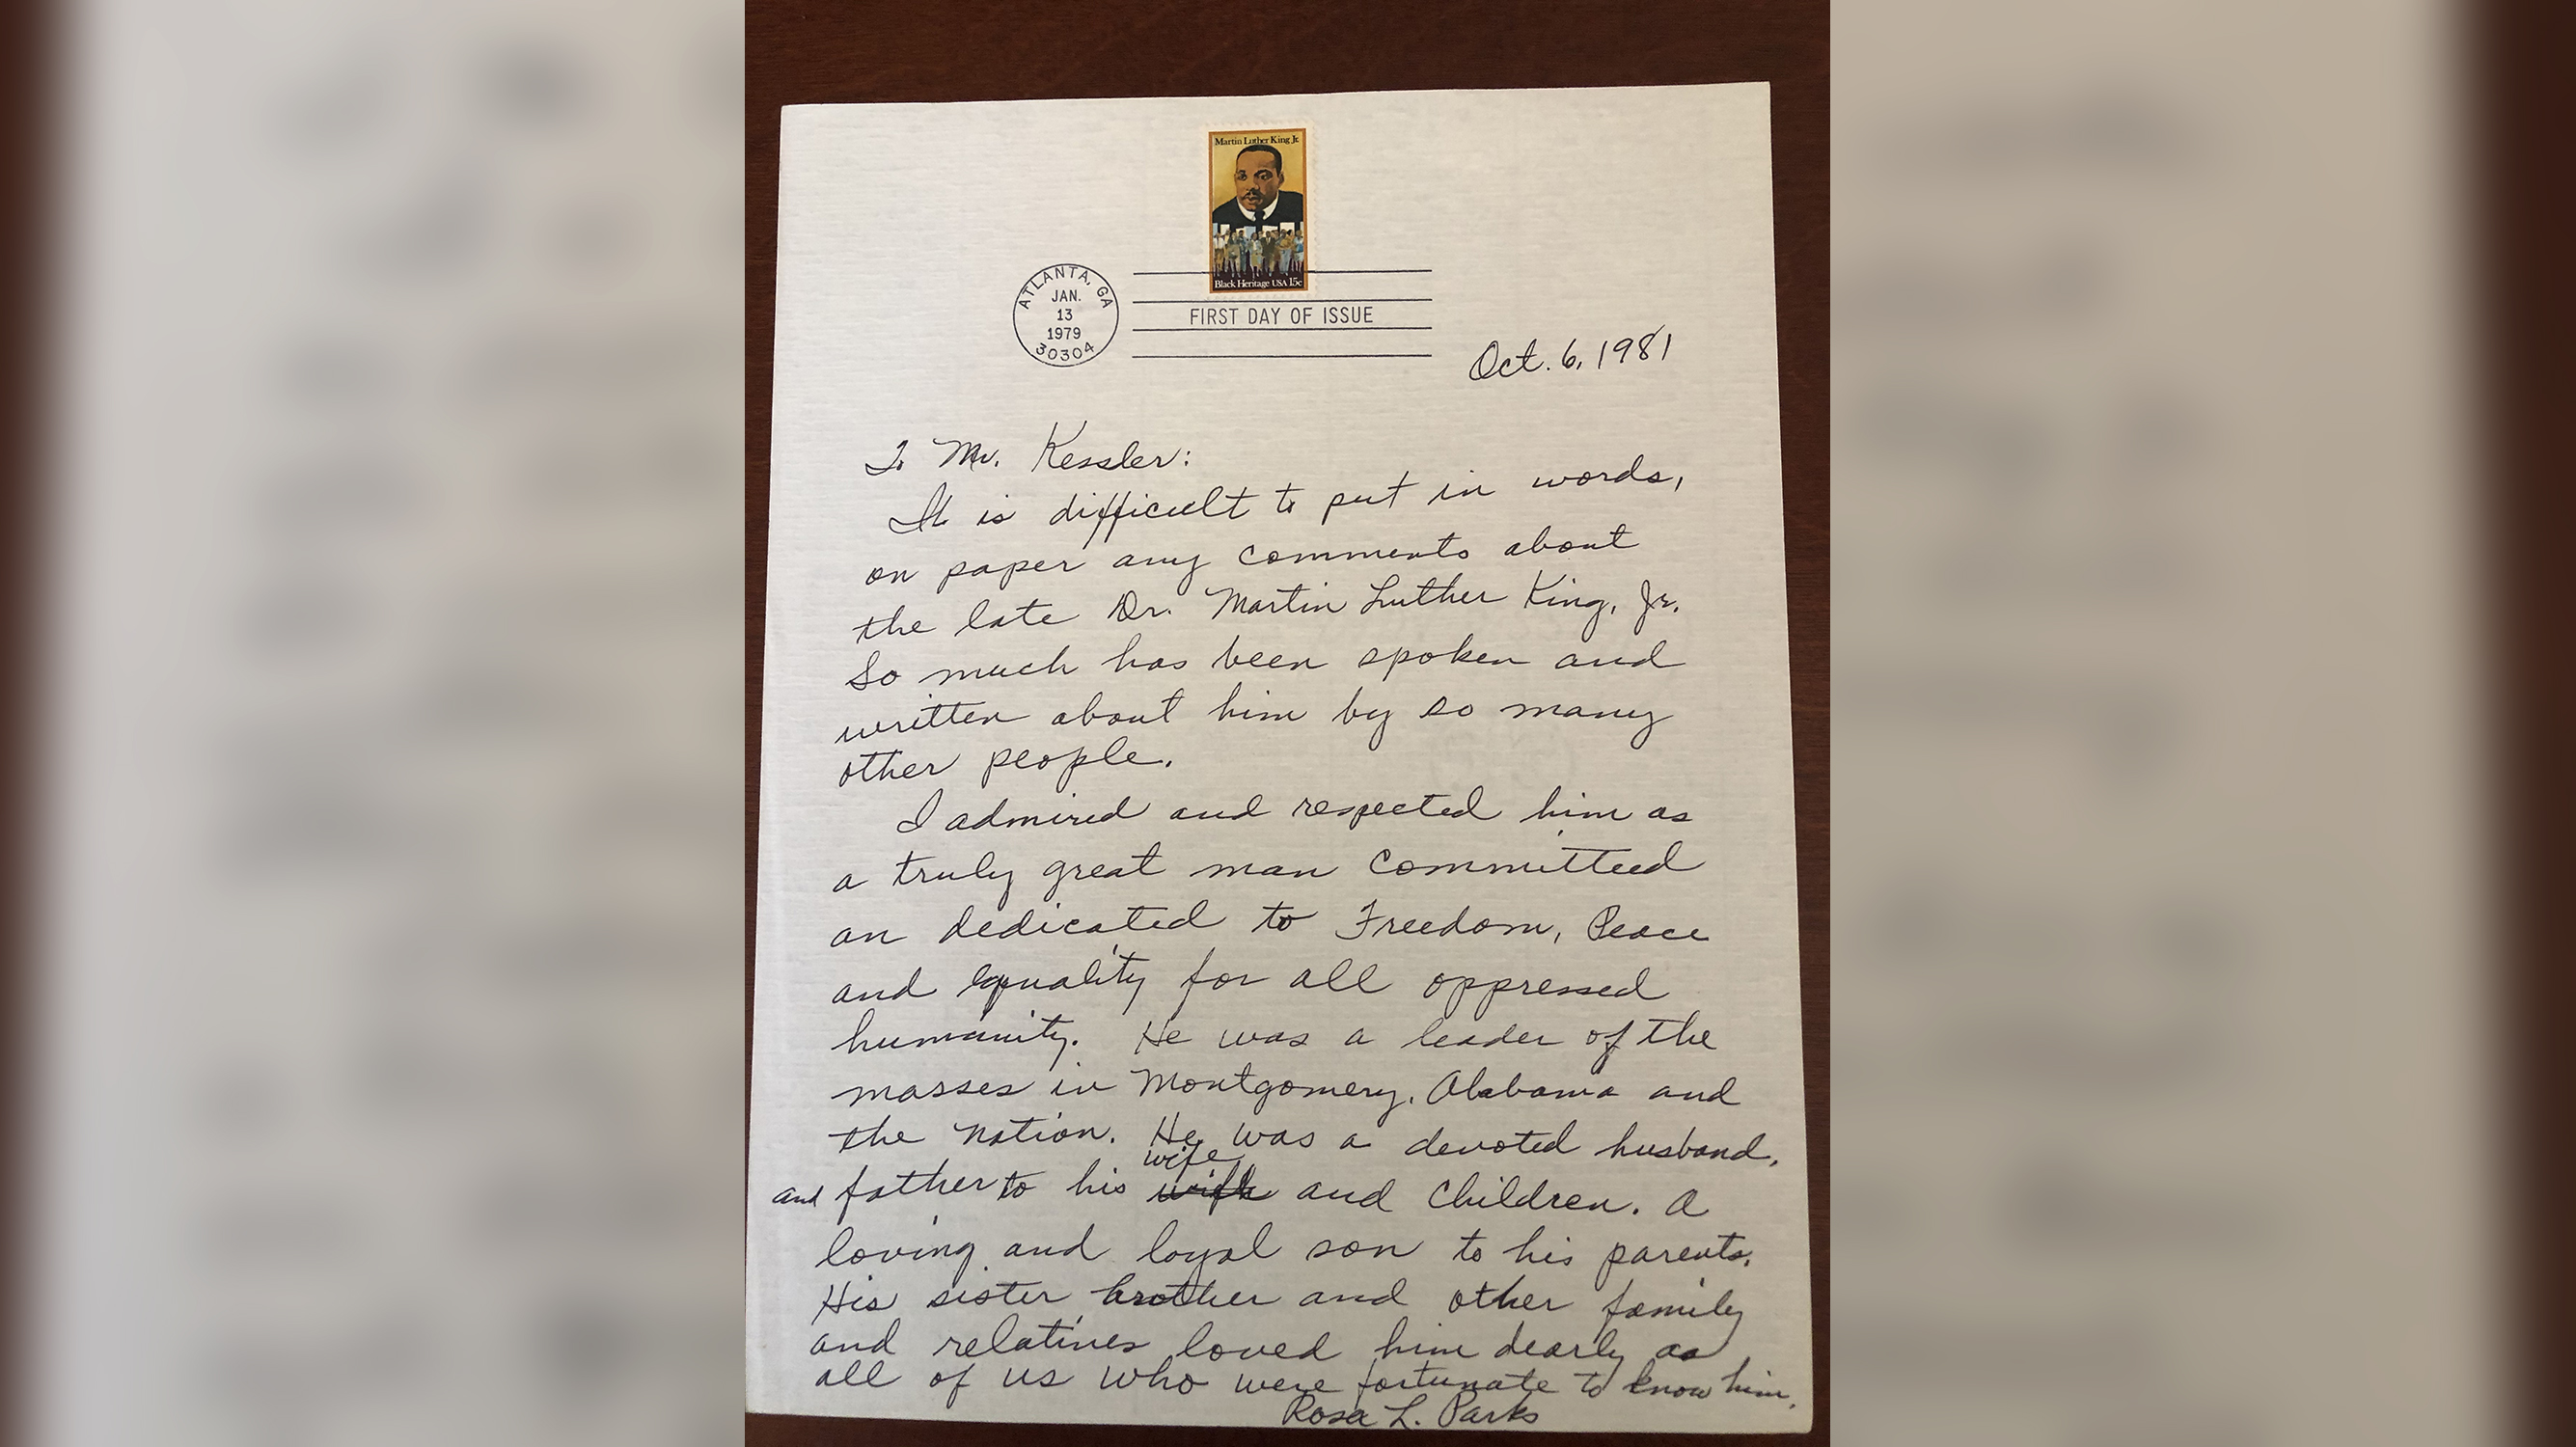 Rosa Parks's handwritten letter about Martin Luther King Jr. goes up for sale